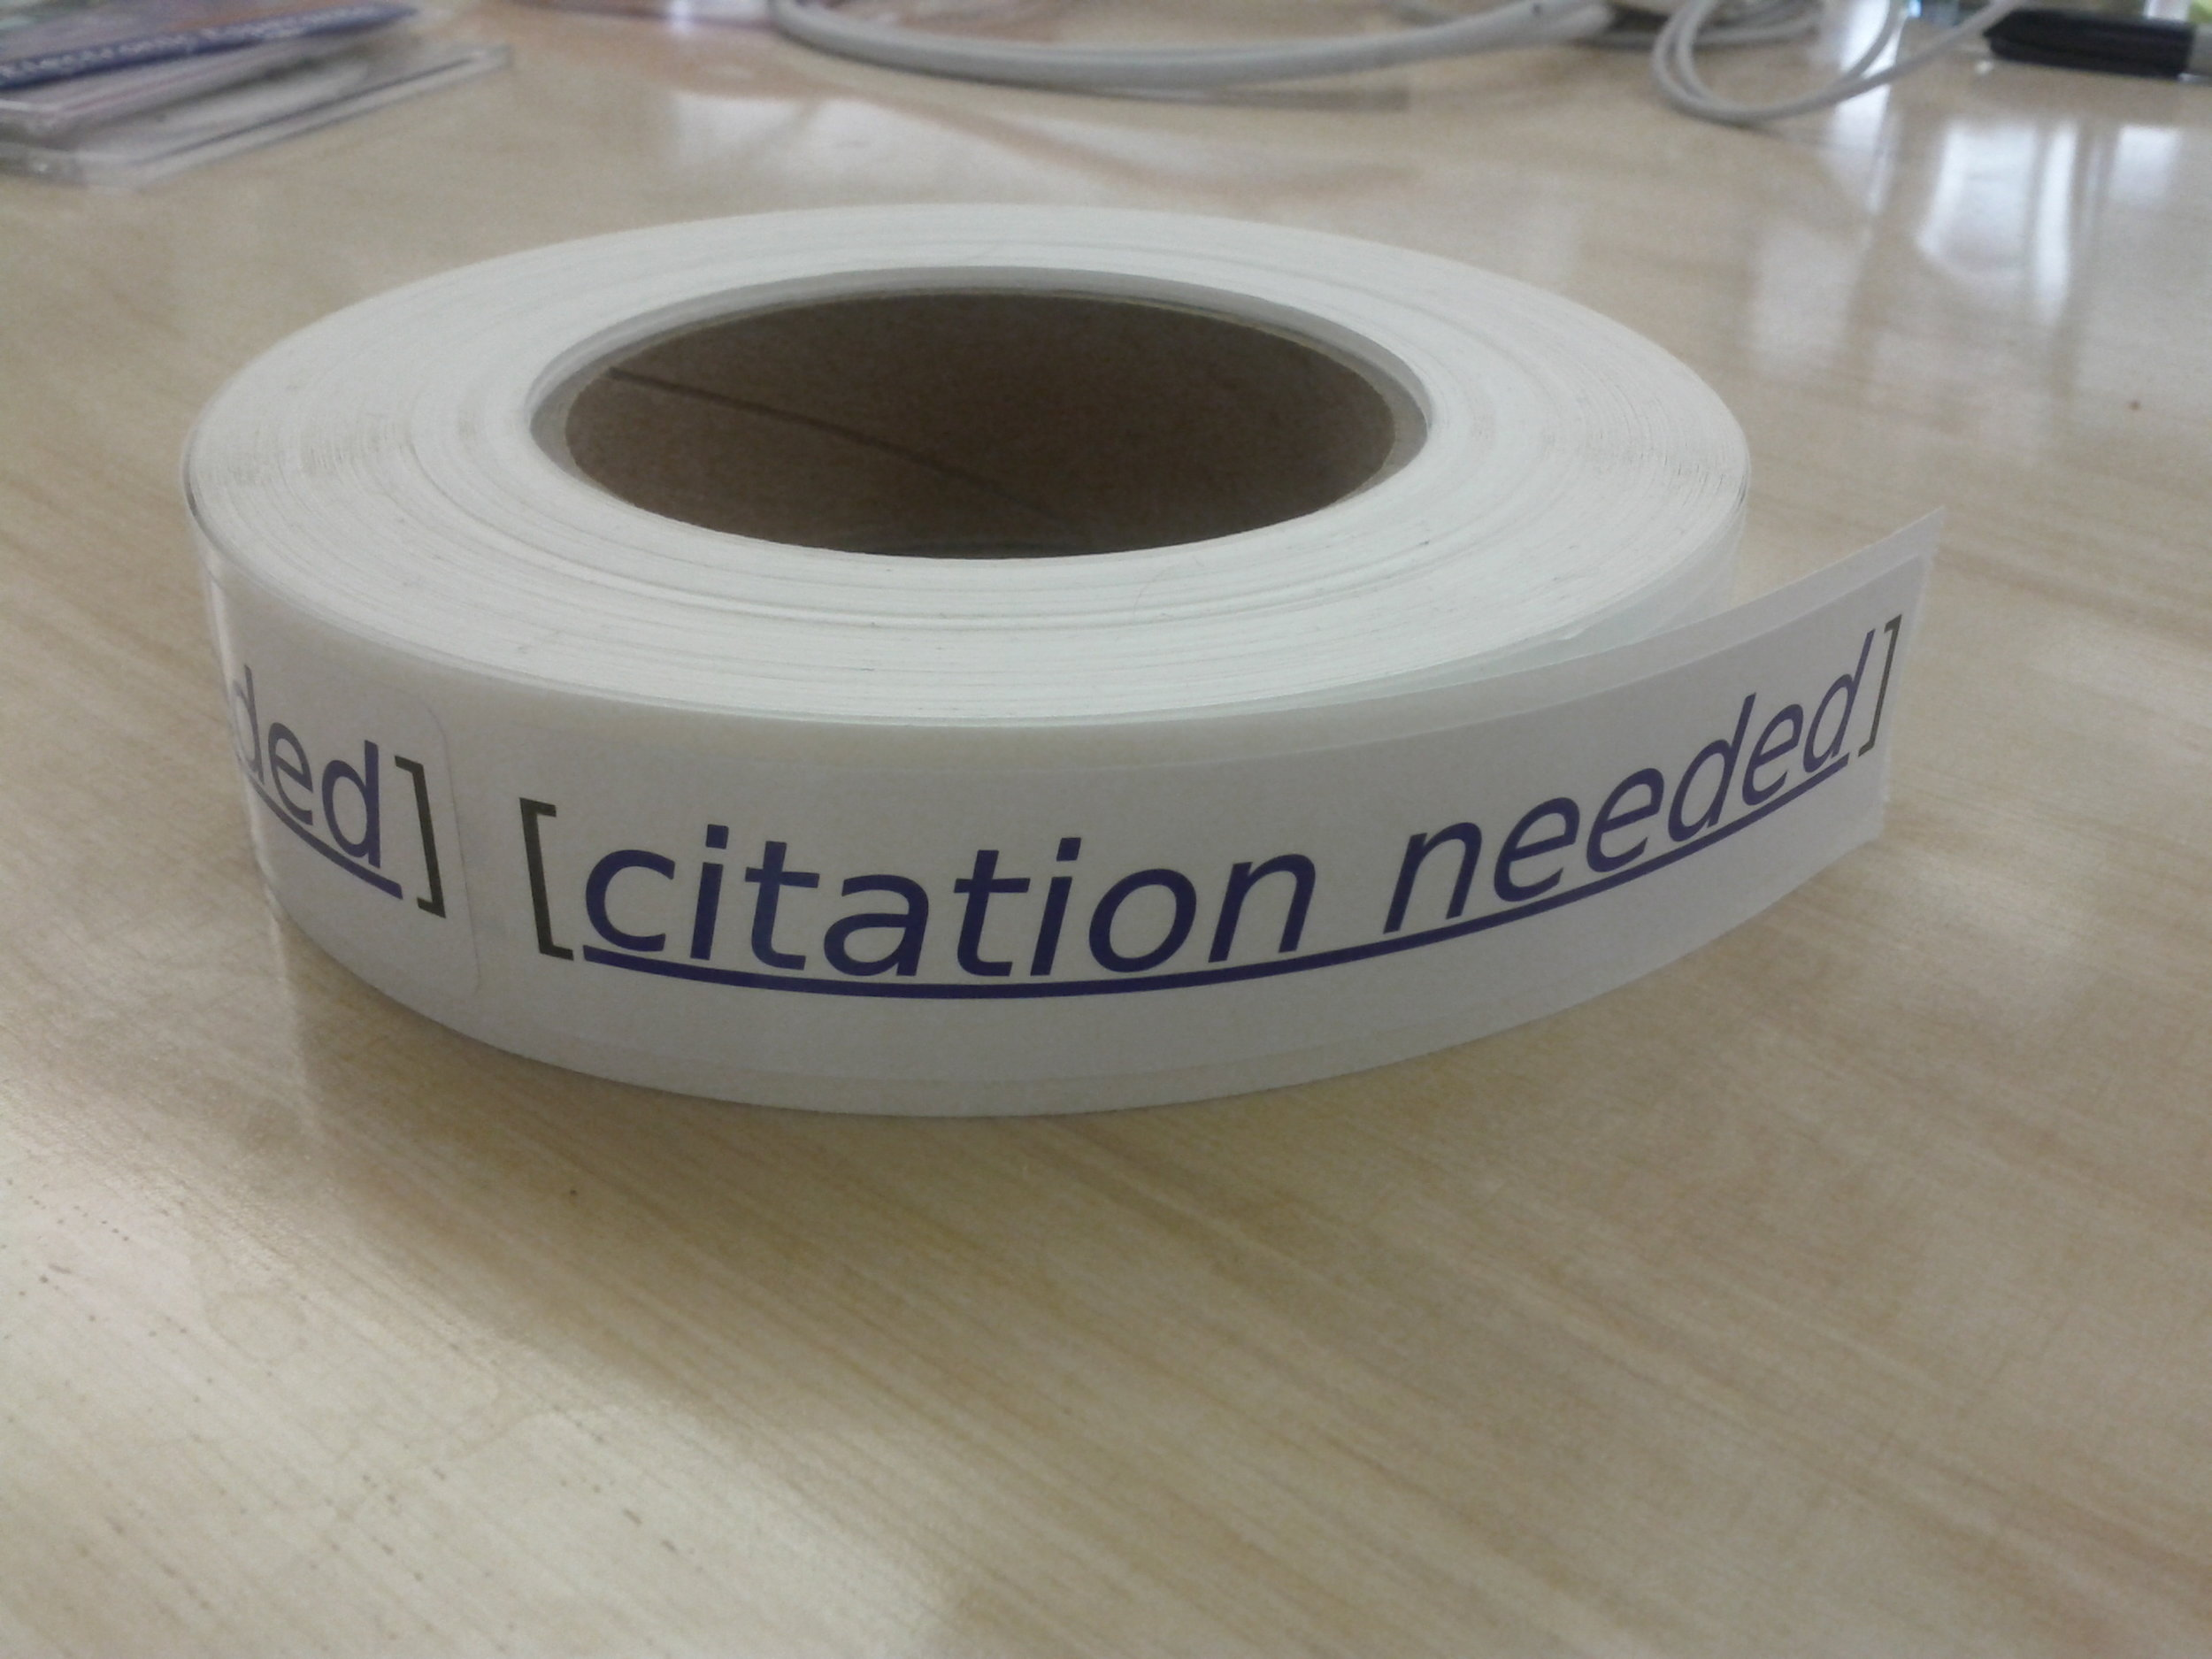 Citation_needed_stickers.jpeg